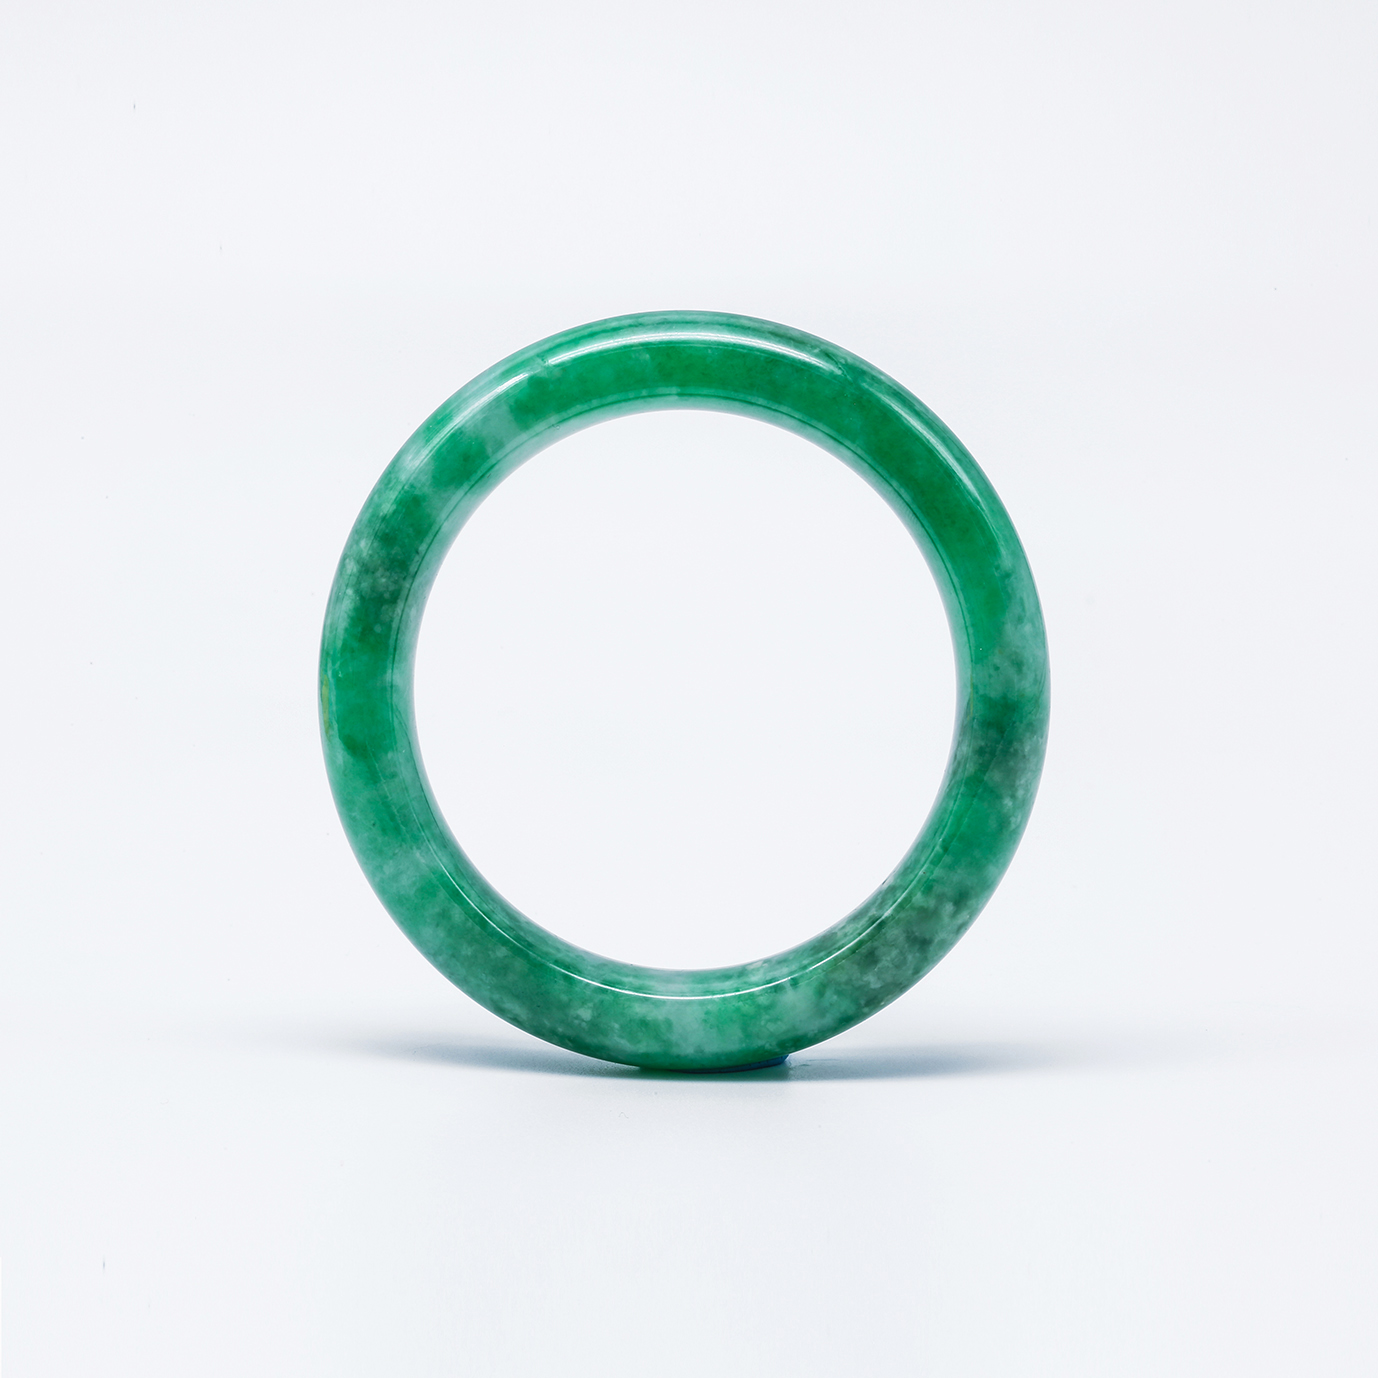 Translucent Green All Around Jadeite Jade Bangle